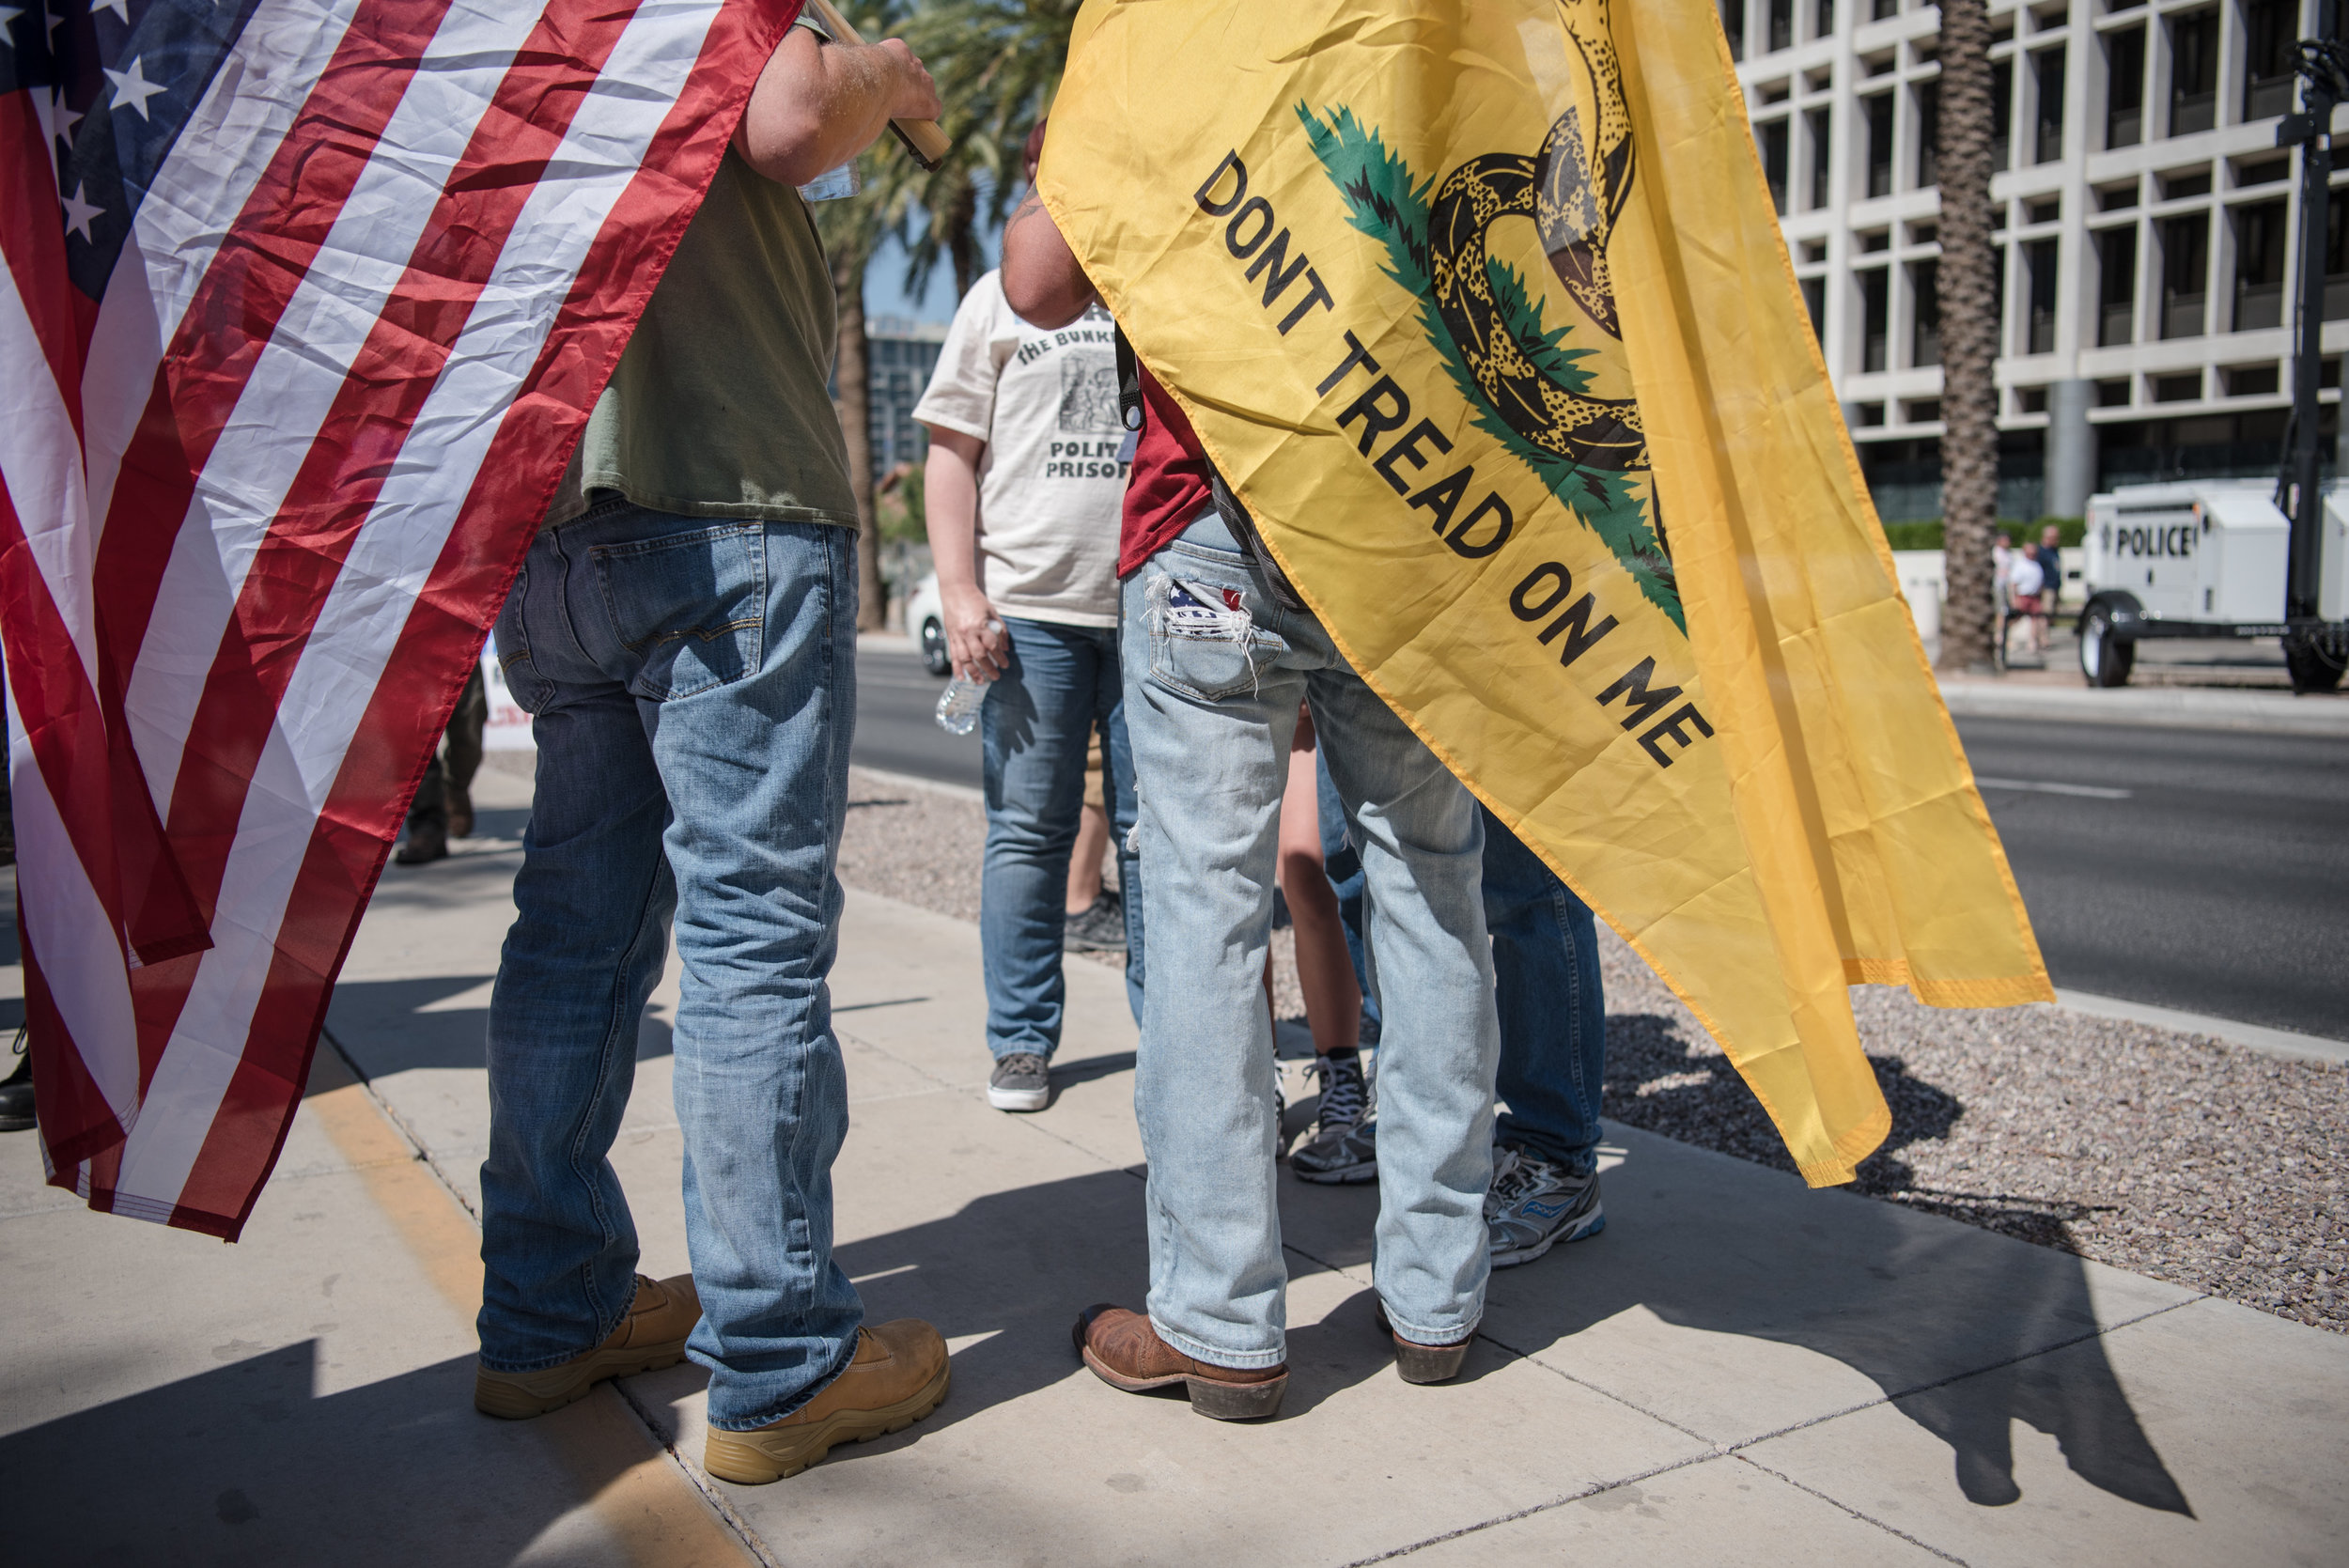 A rally to bring awareness to the Bundy Political Prisoners begins at the Federal Courthouse on Saturday, July 15, 2017, in Las Vegas. Morgan Lieberman Las Vegas Review-Journal